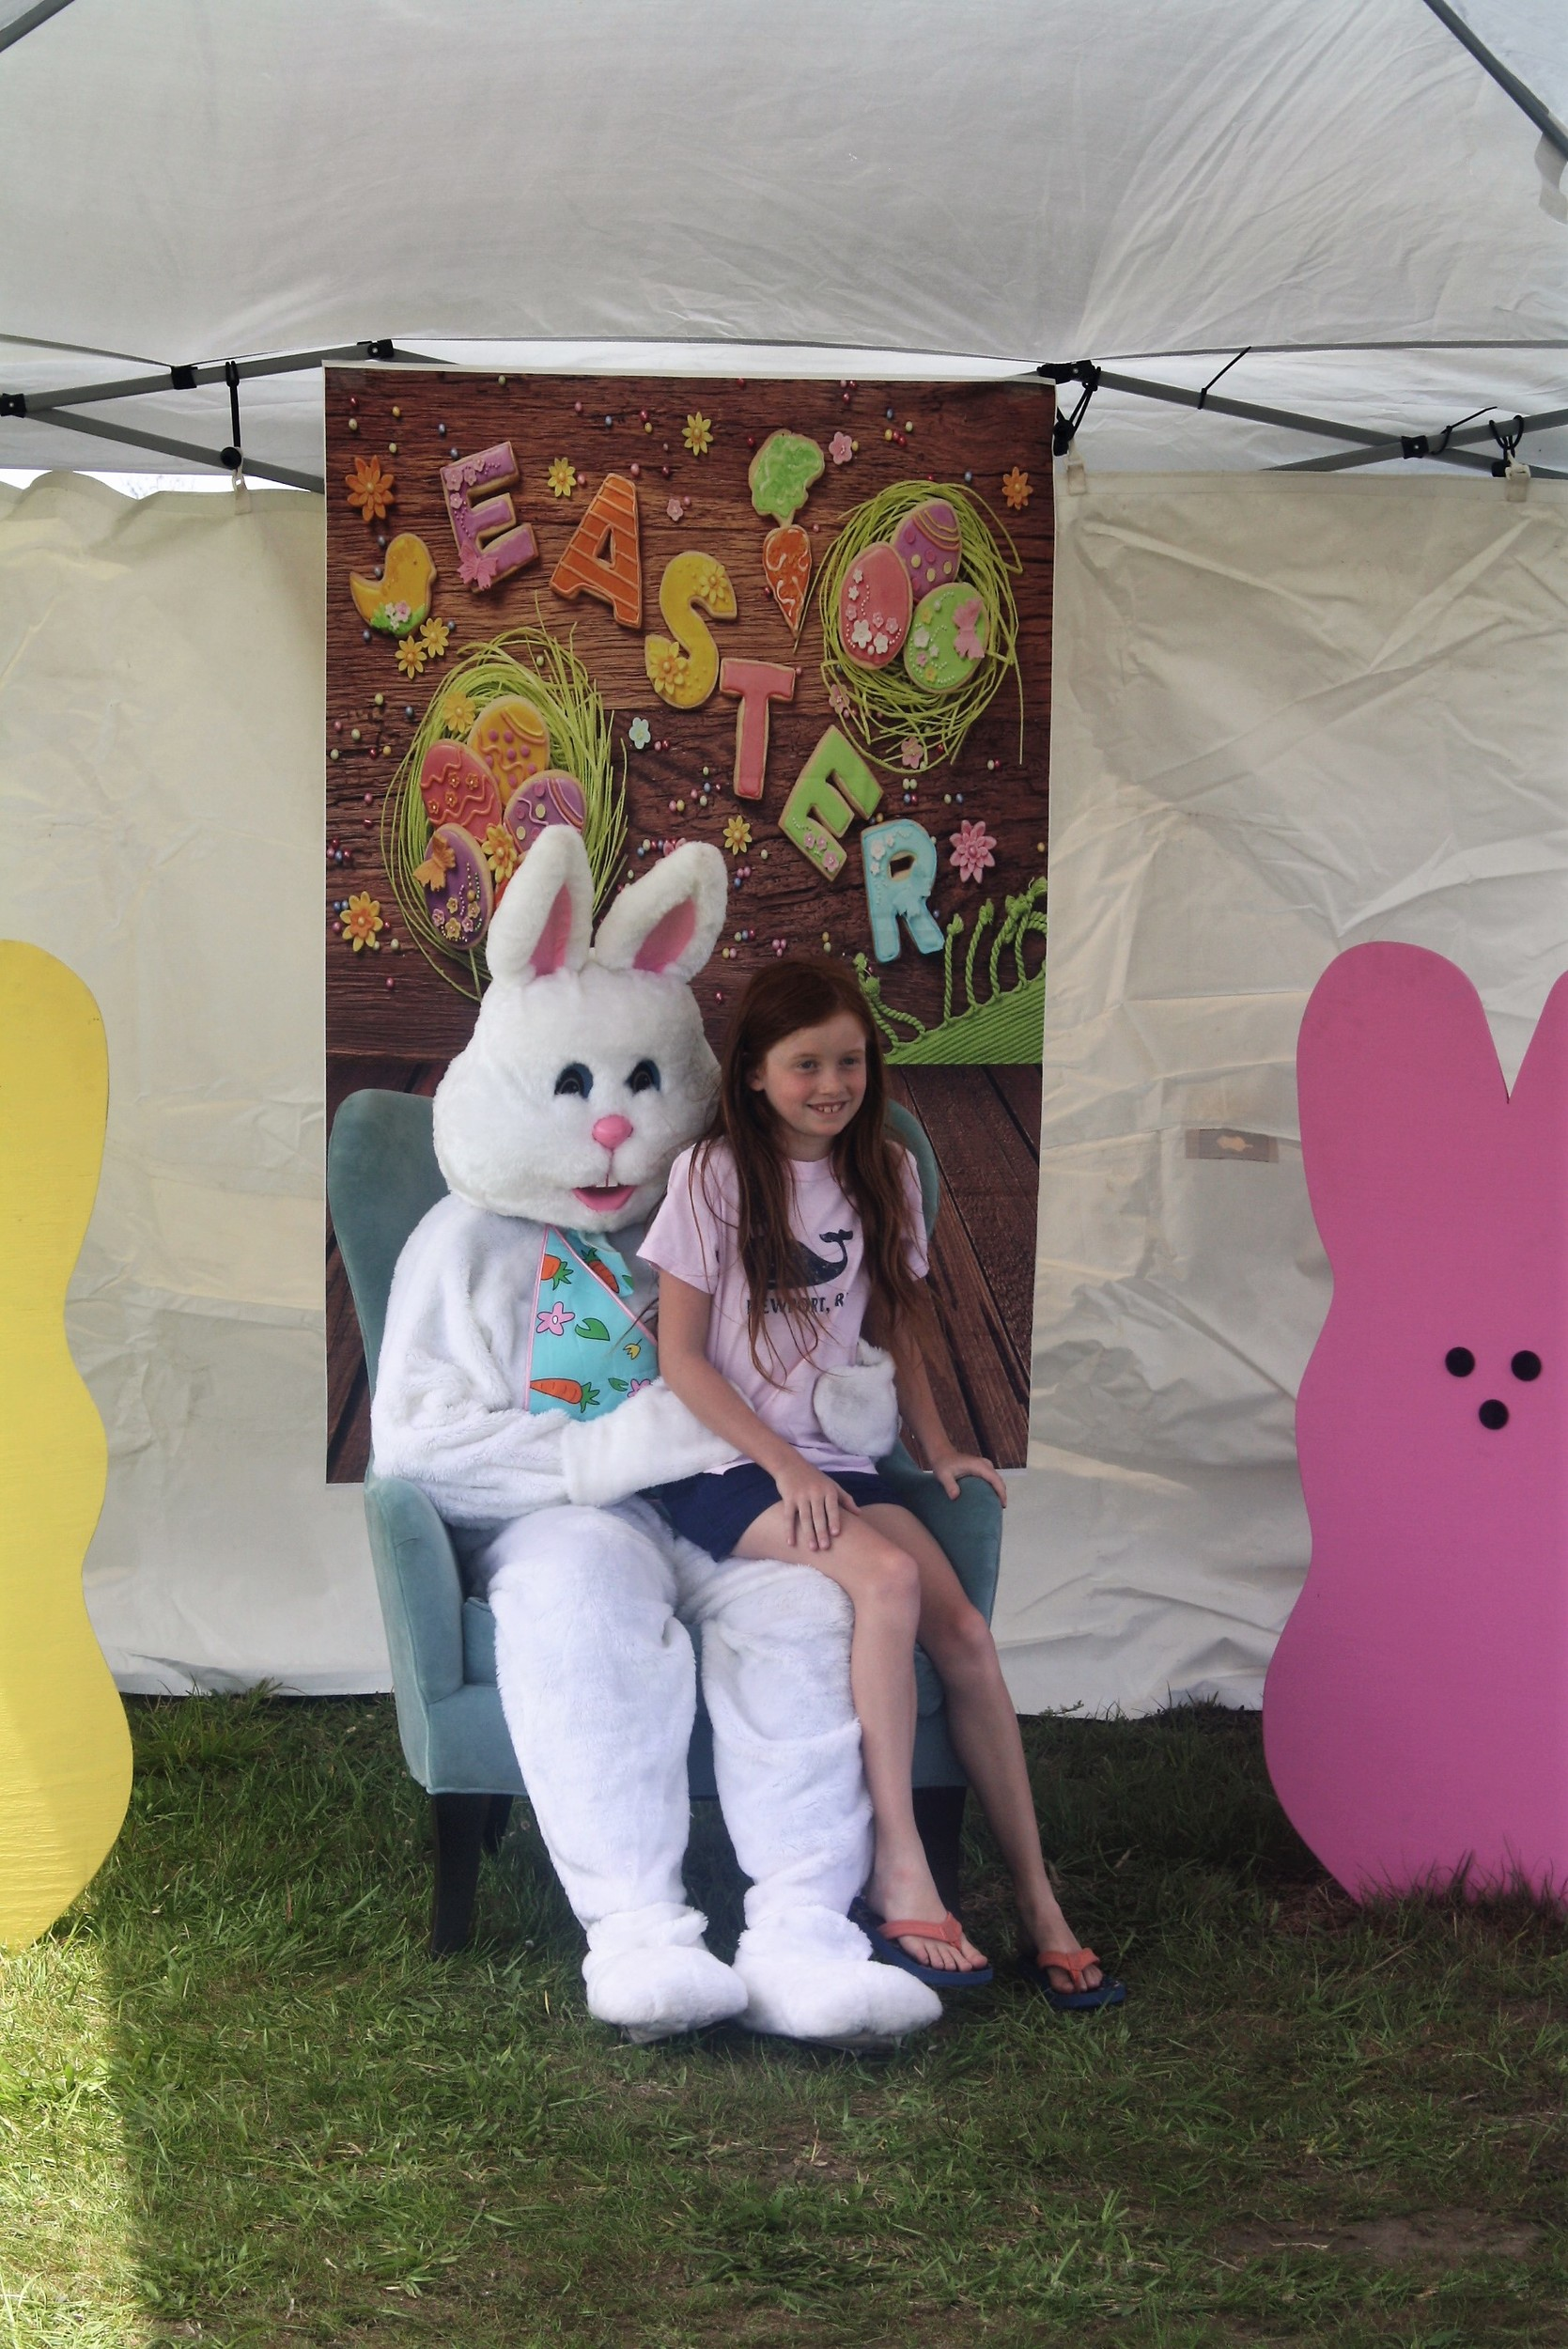 The Easter Bunny greets children at the Nocatee Farmers Market.